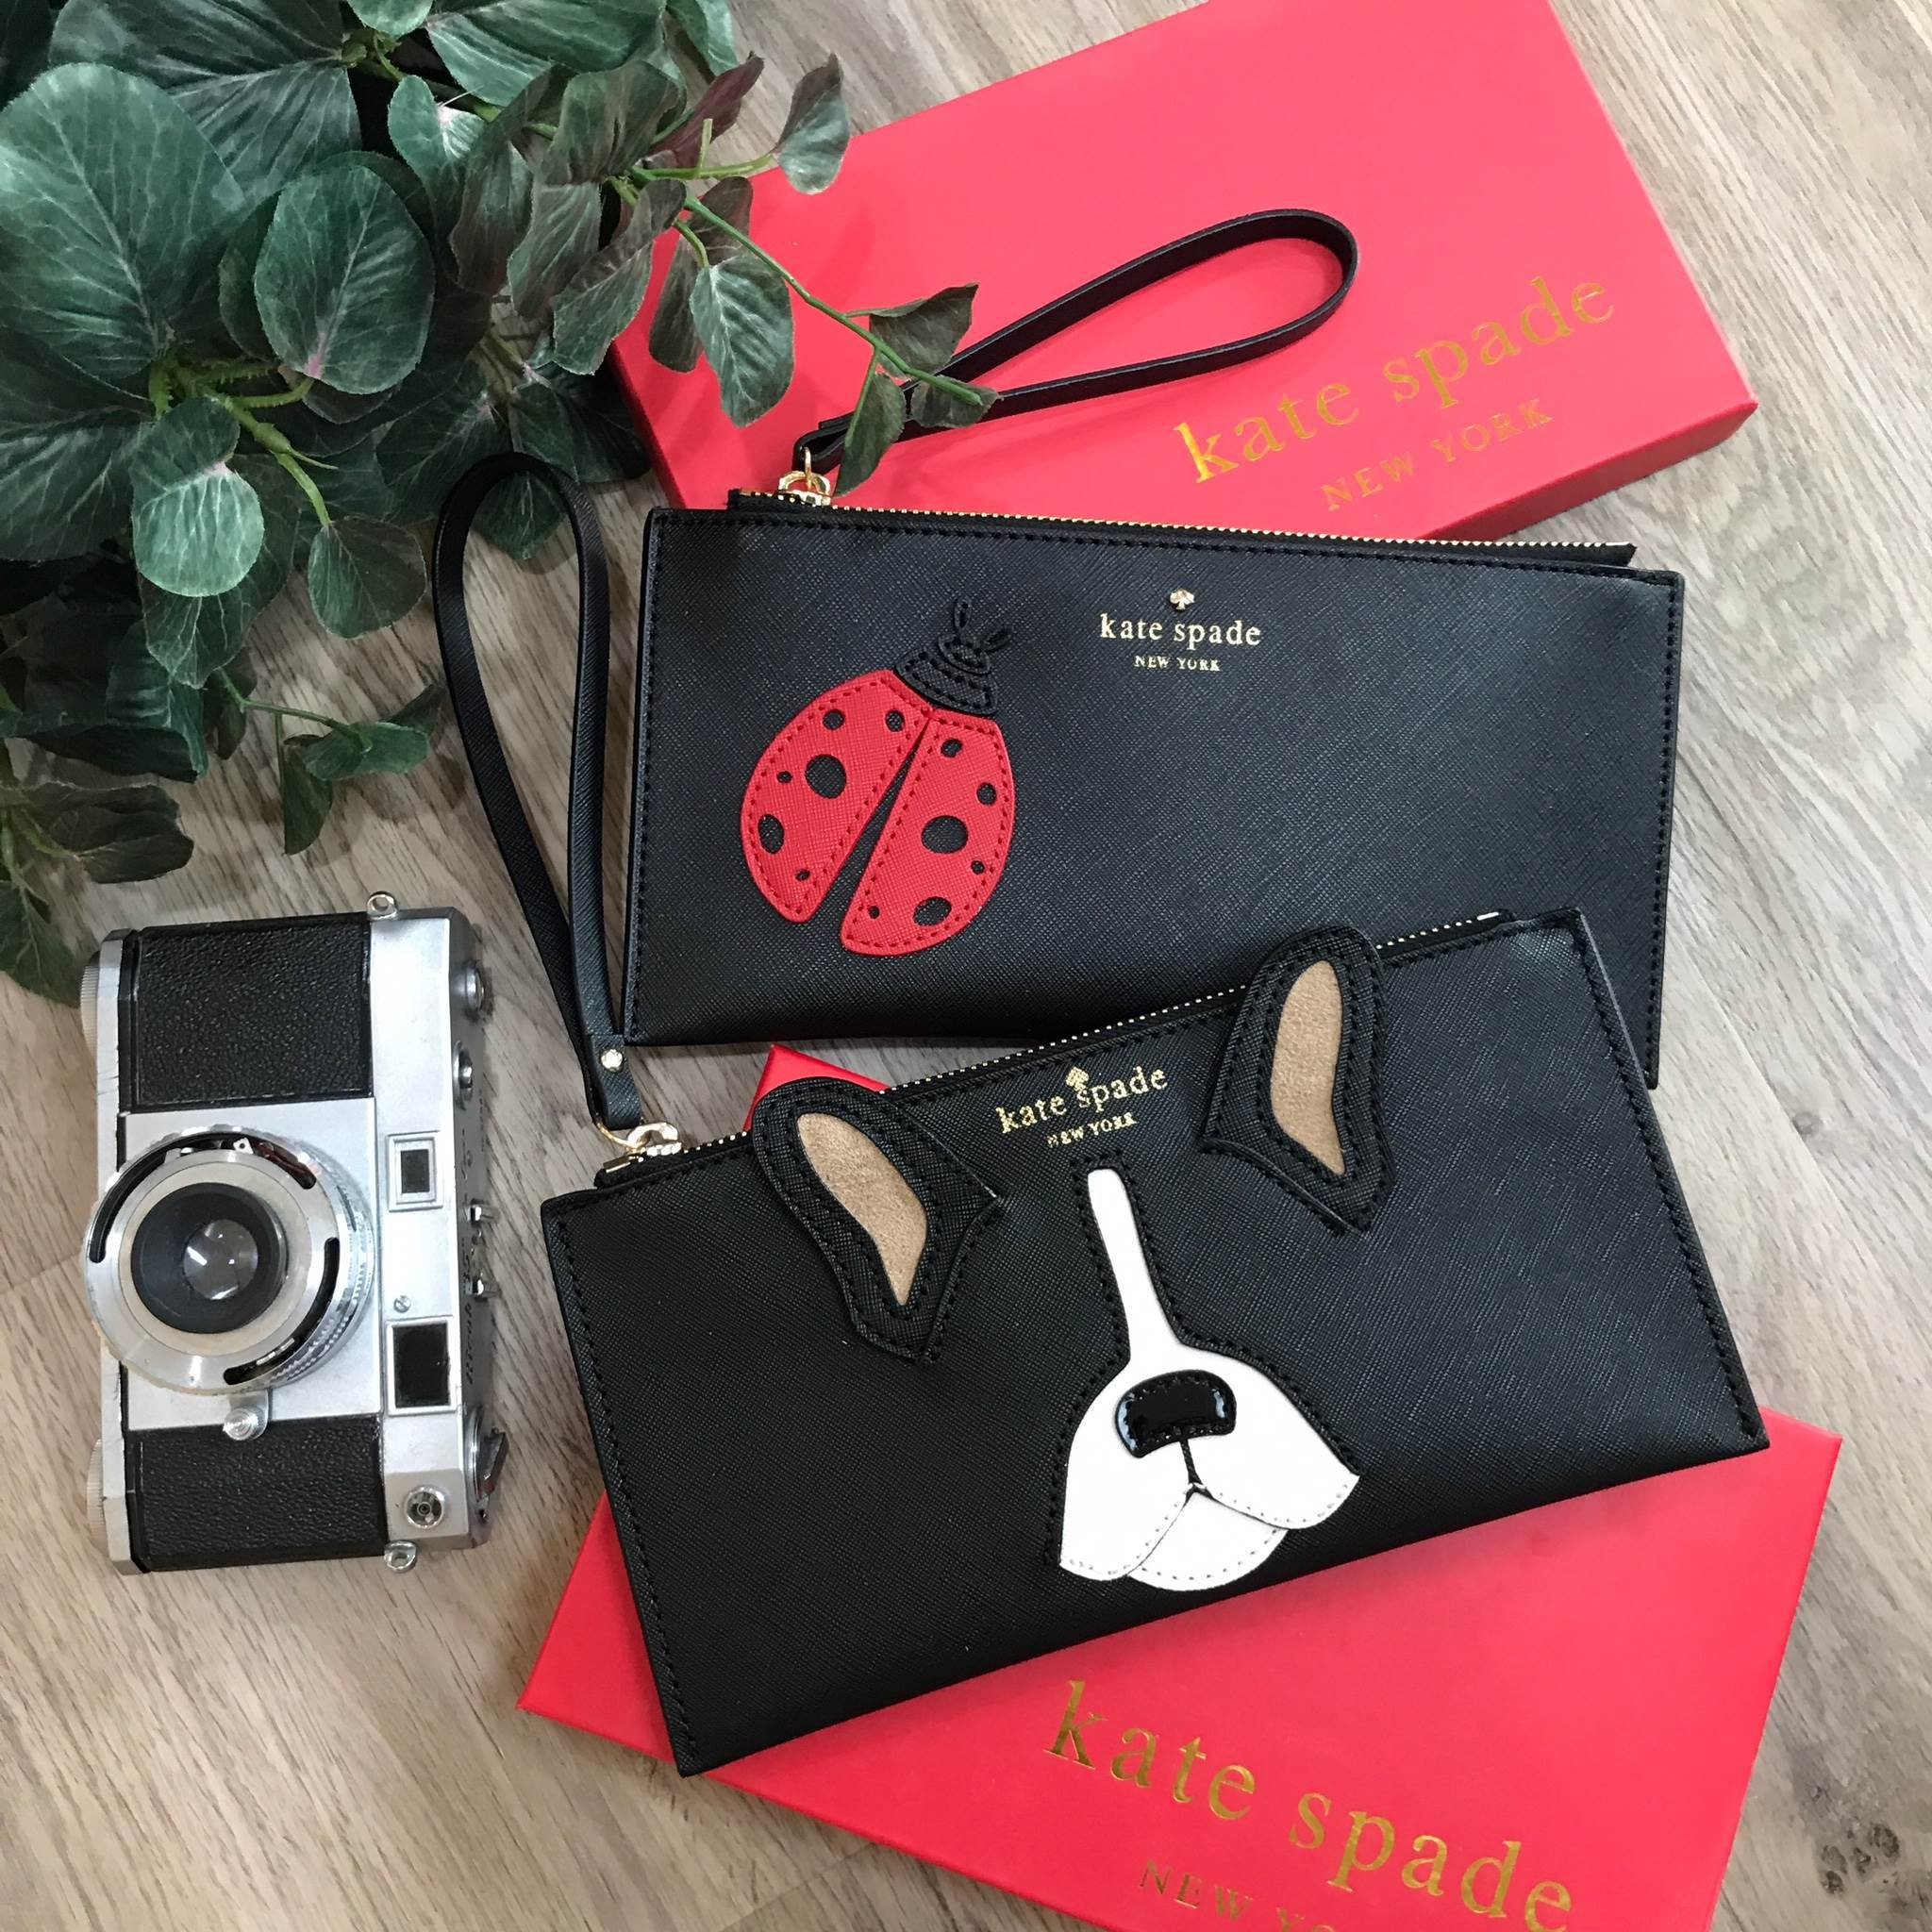 KATE SPADE NEW YORK CLUTH BAG *สินค้า Outlet